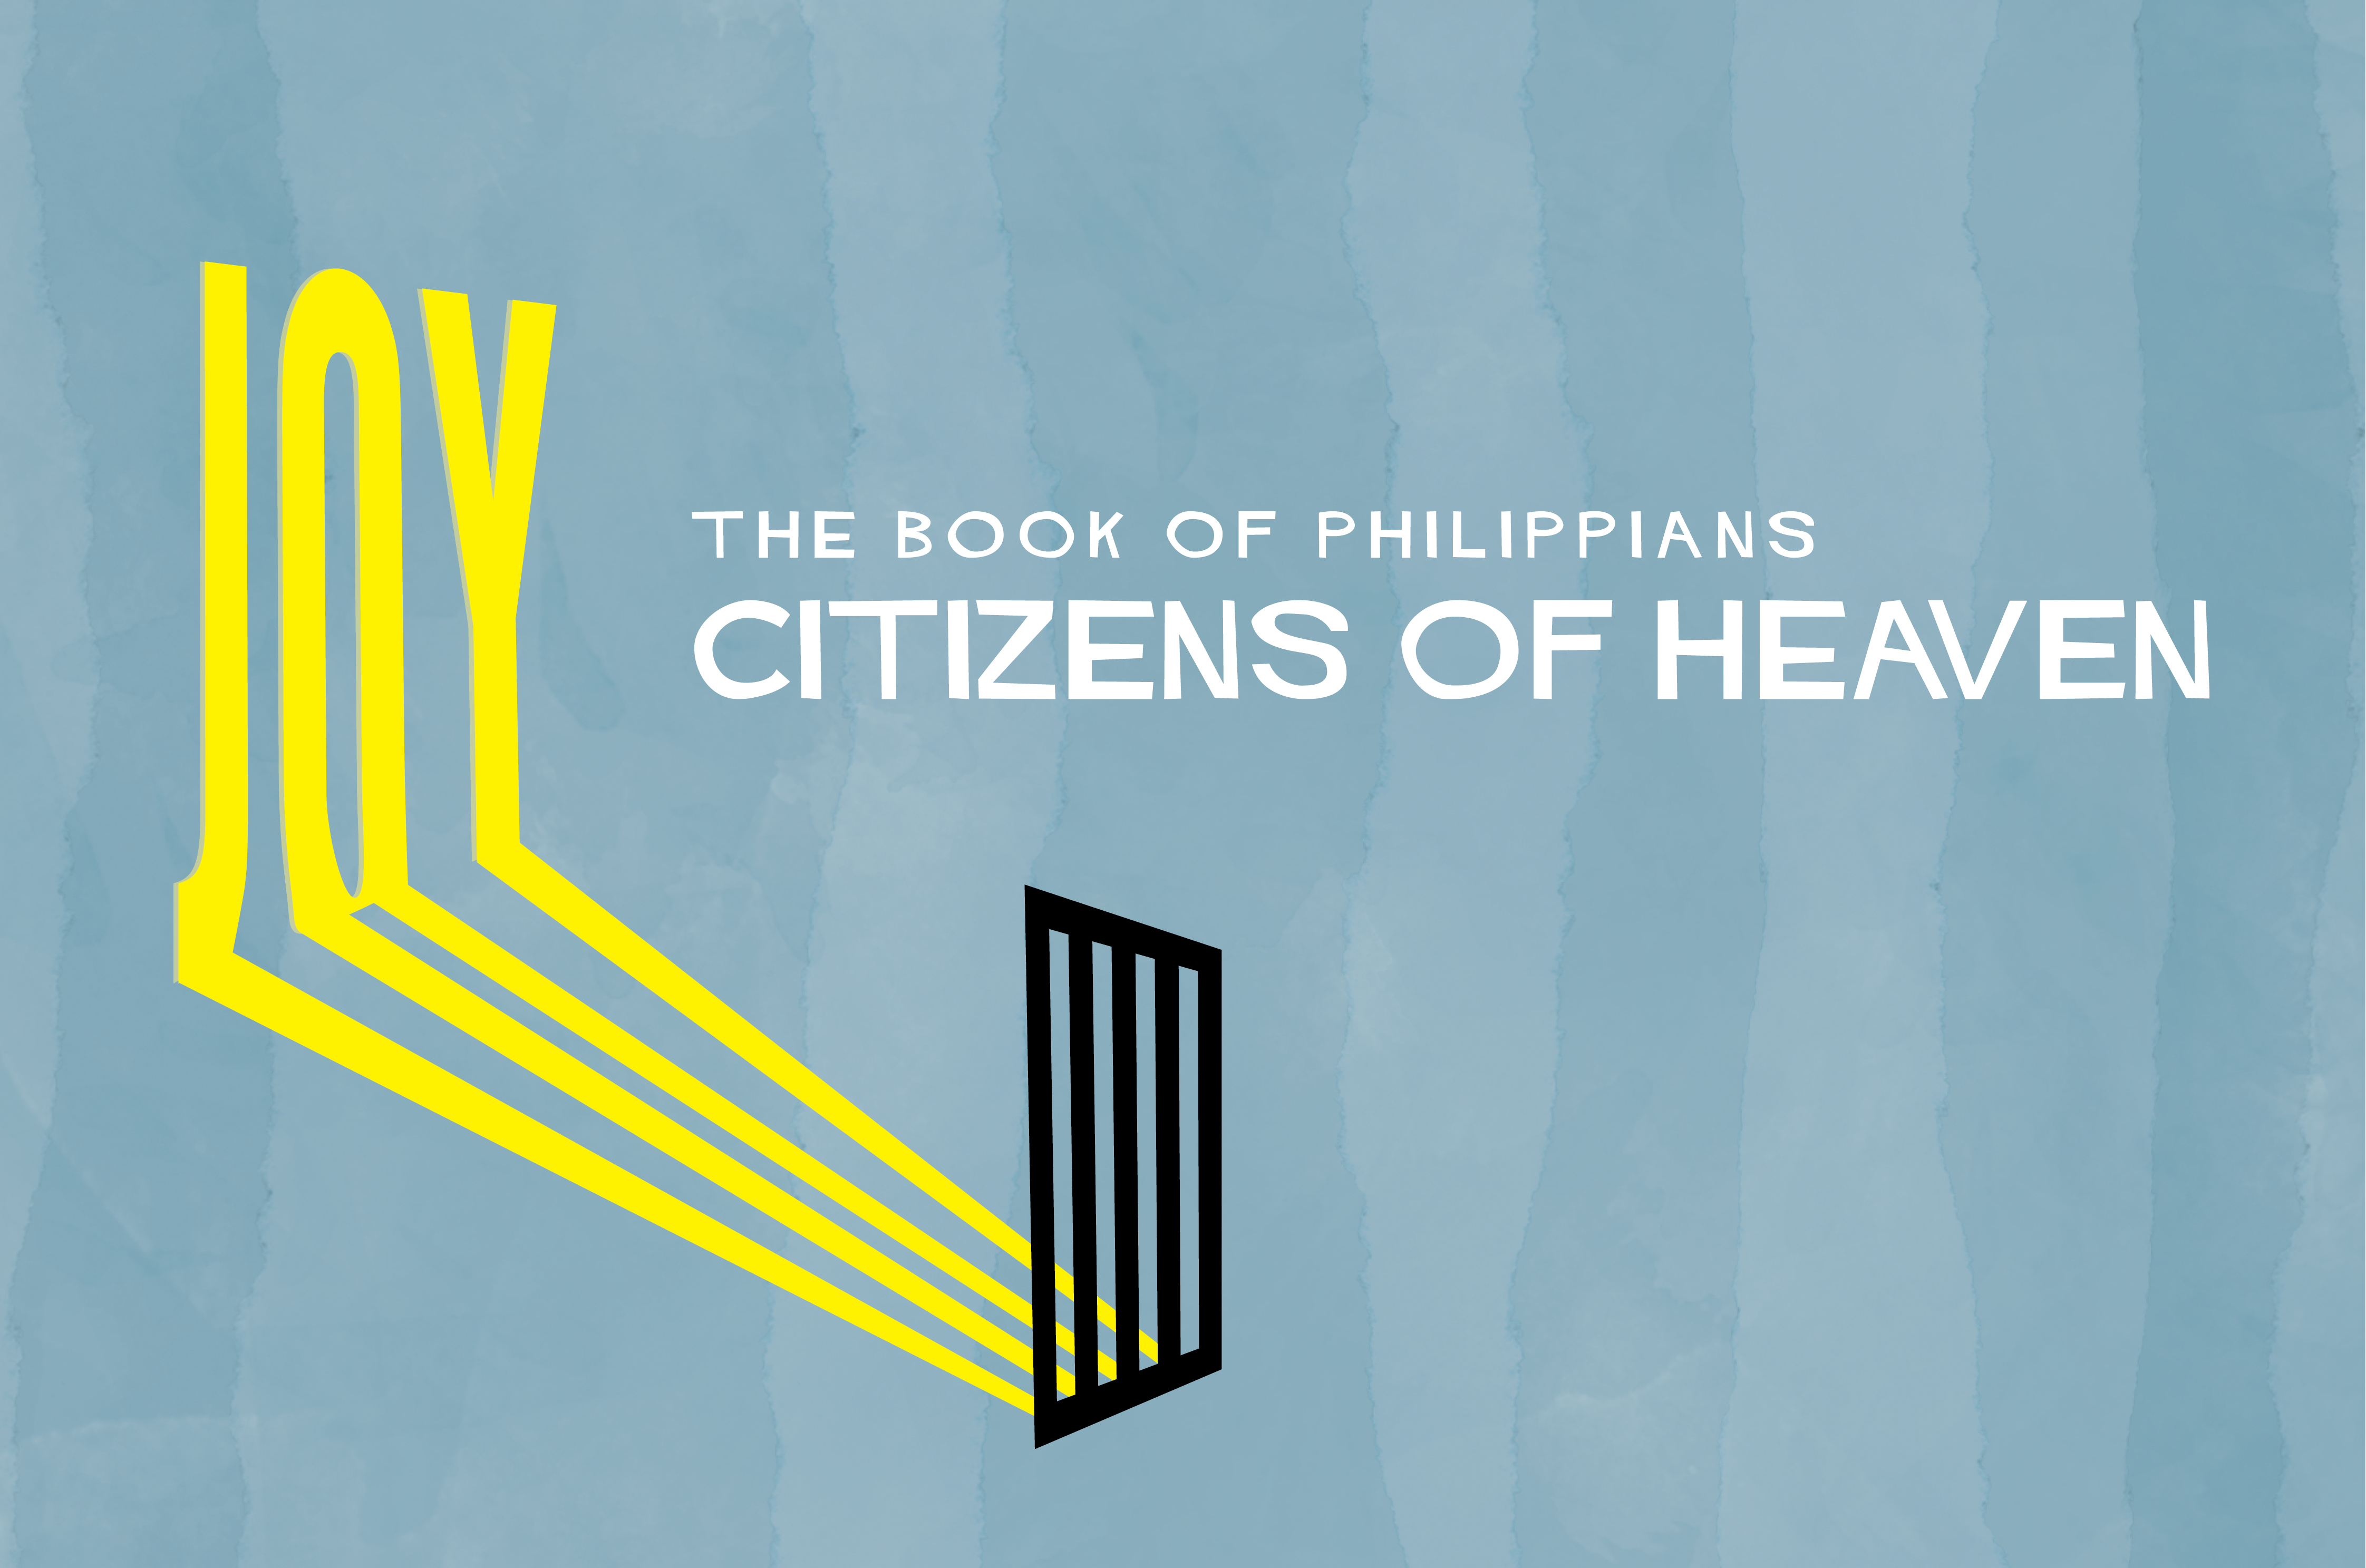 Philippians: Citizens of Heaven